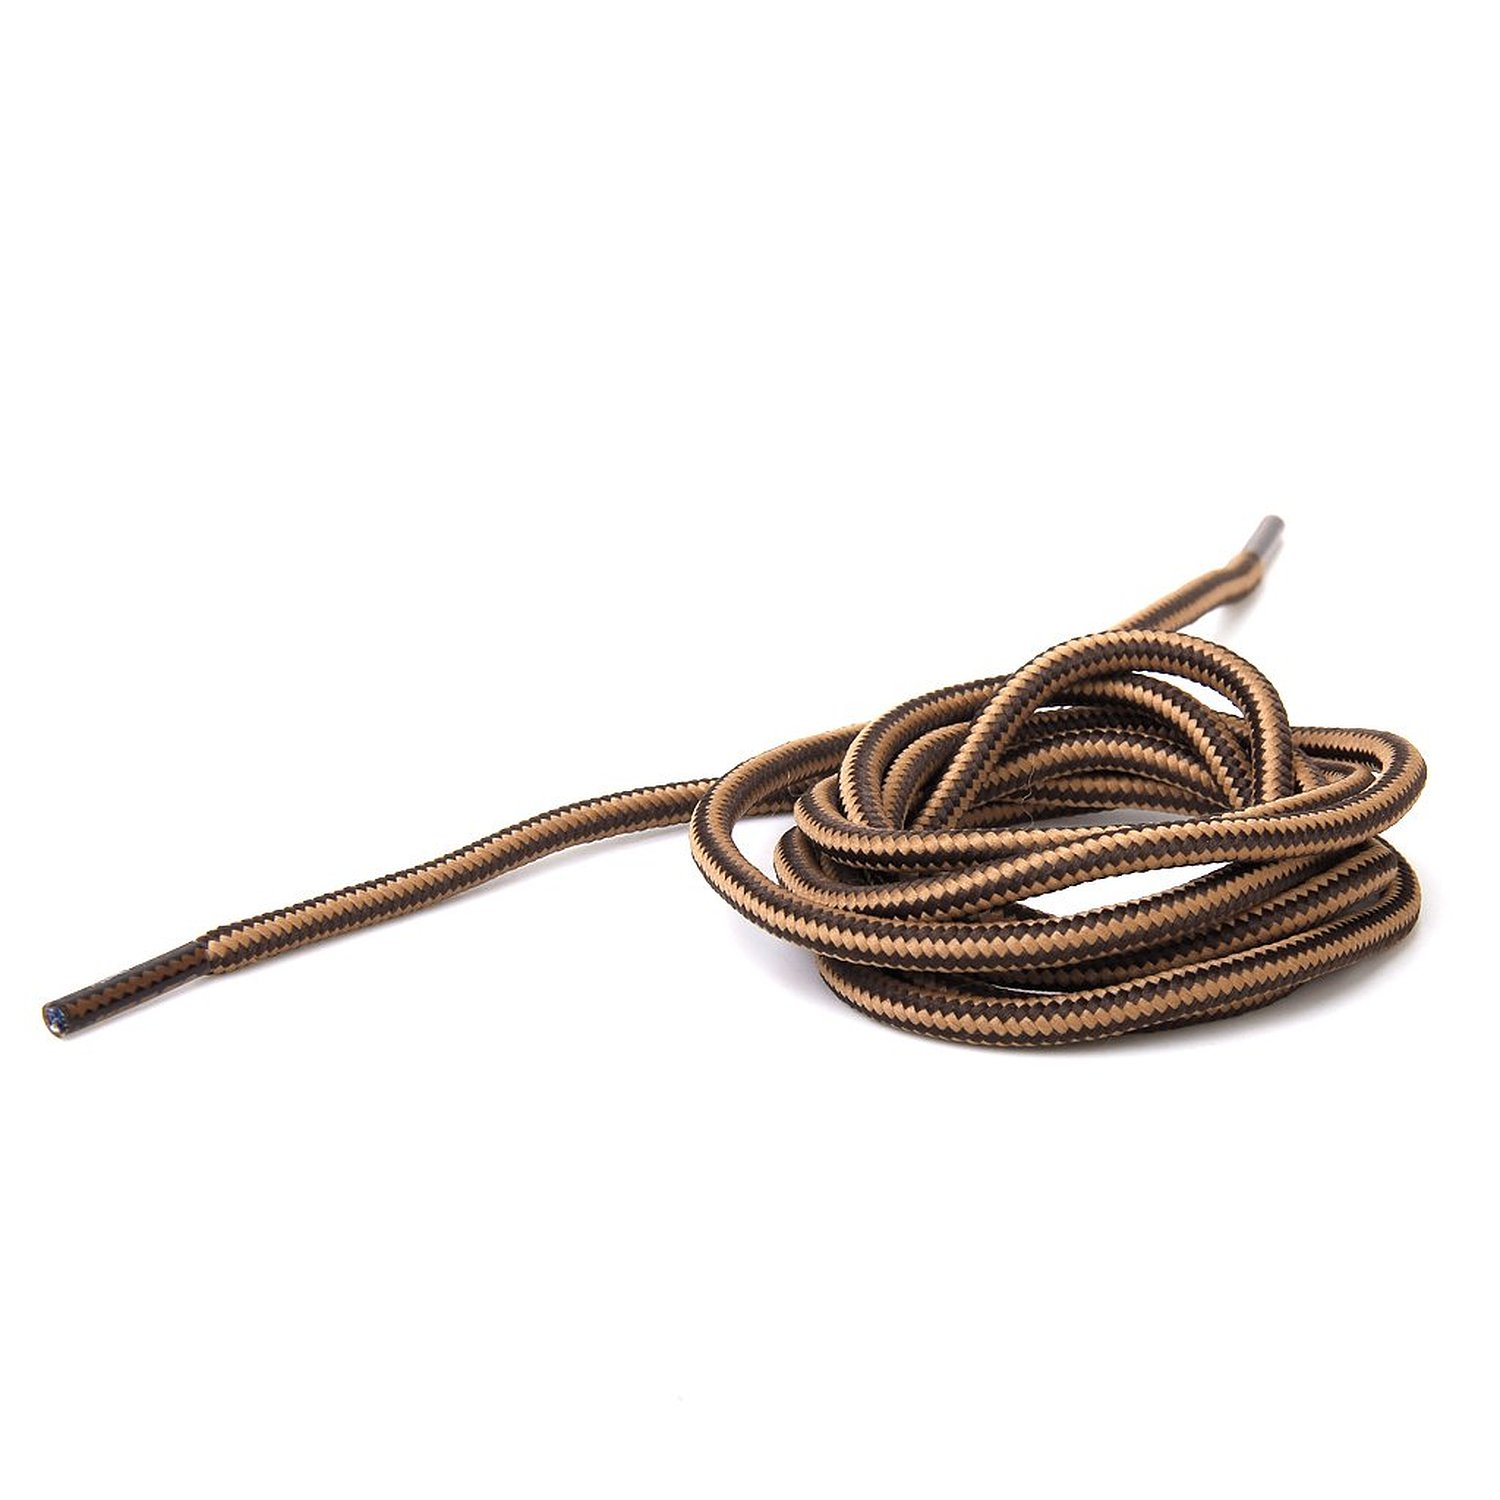 1 Pair 150 Cm Durable High Resistance Laces For Shoes - Brown Coffee Stripes